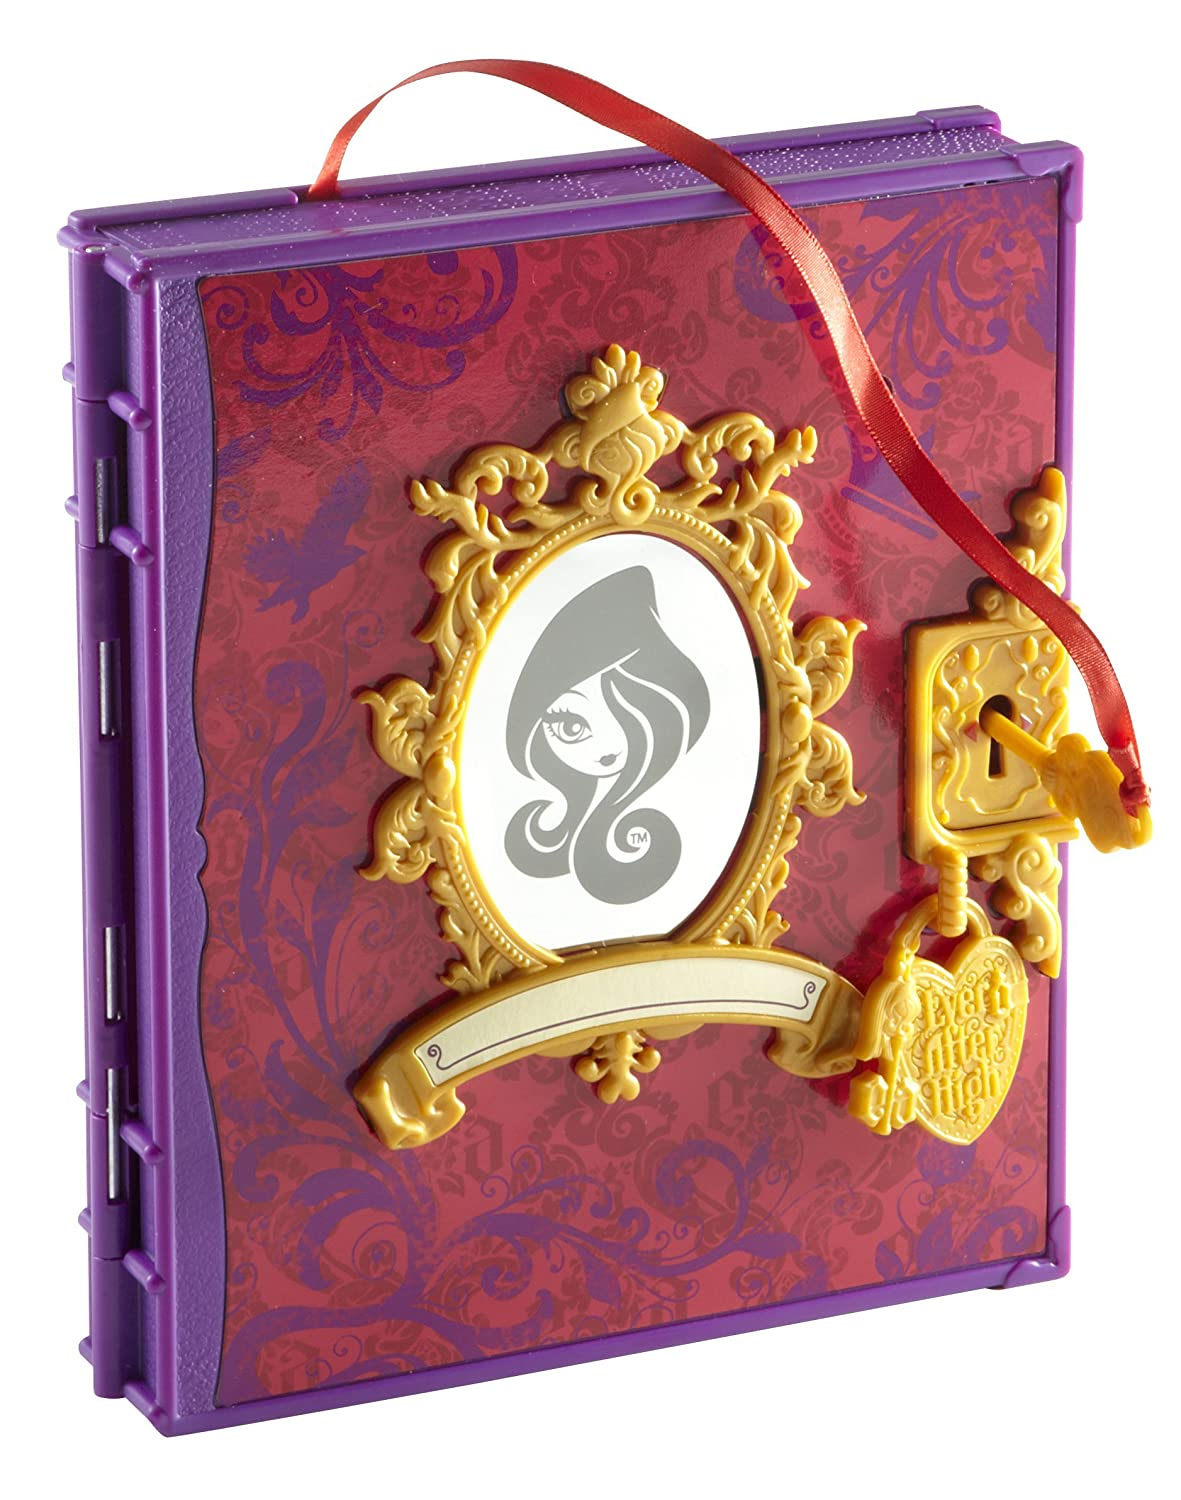 Ever After High - Diario (BGJ38)